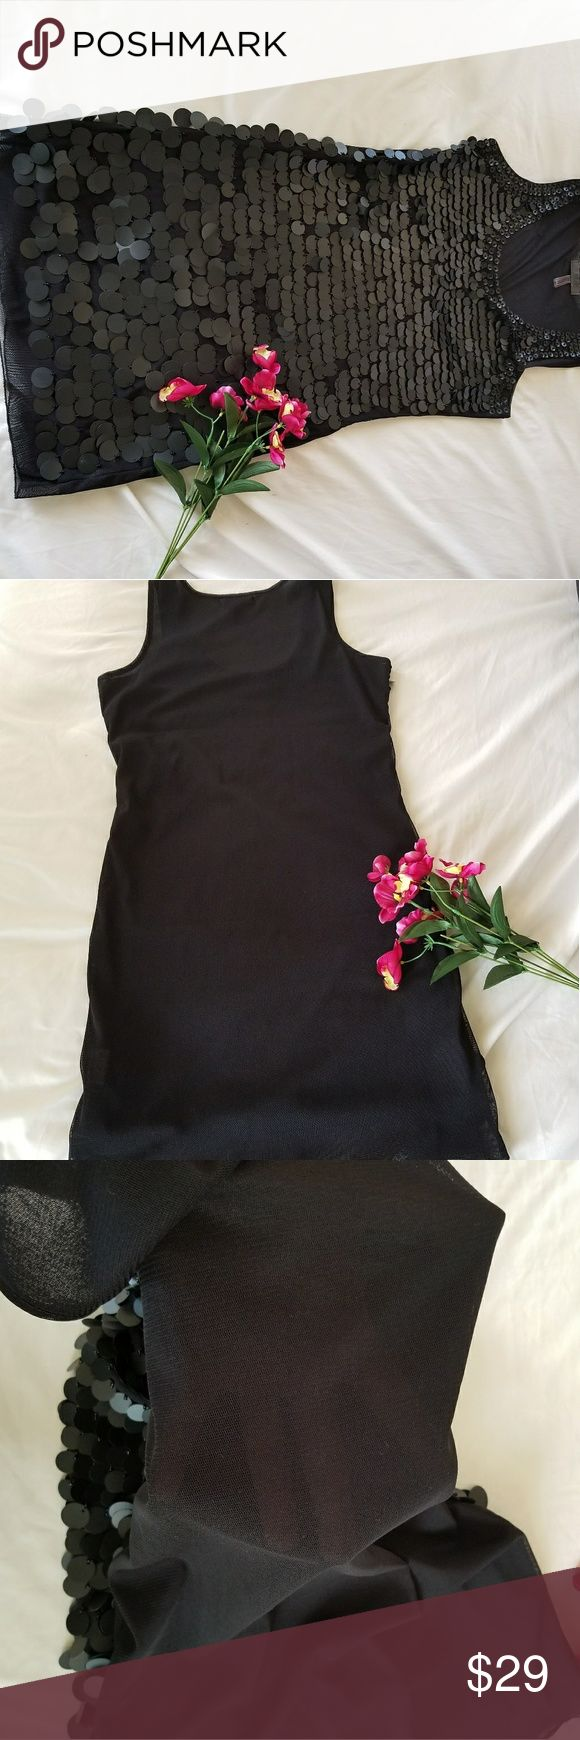 Black sexy seethru lentens dress. This sexy see thru dress is a Medium size. Nice for a night out for a wild girl who love adventure and is not afraid to step out with her sexappeal. Dresses Mini